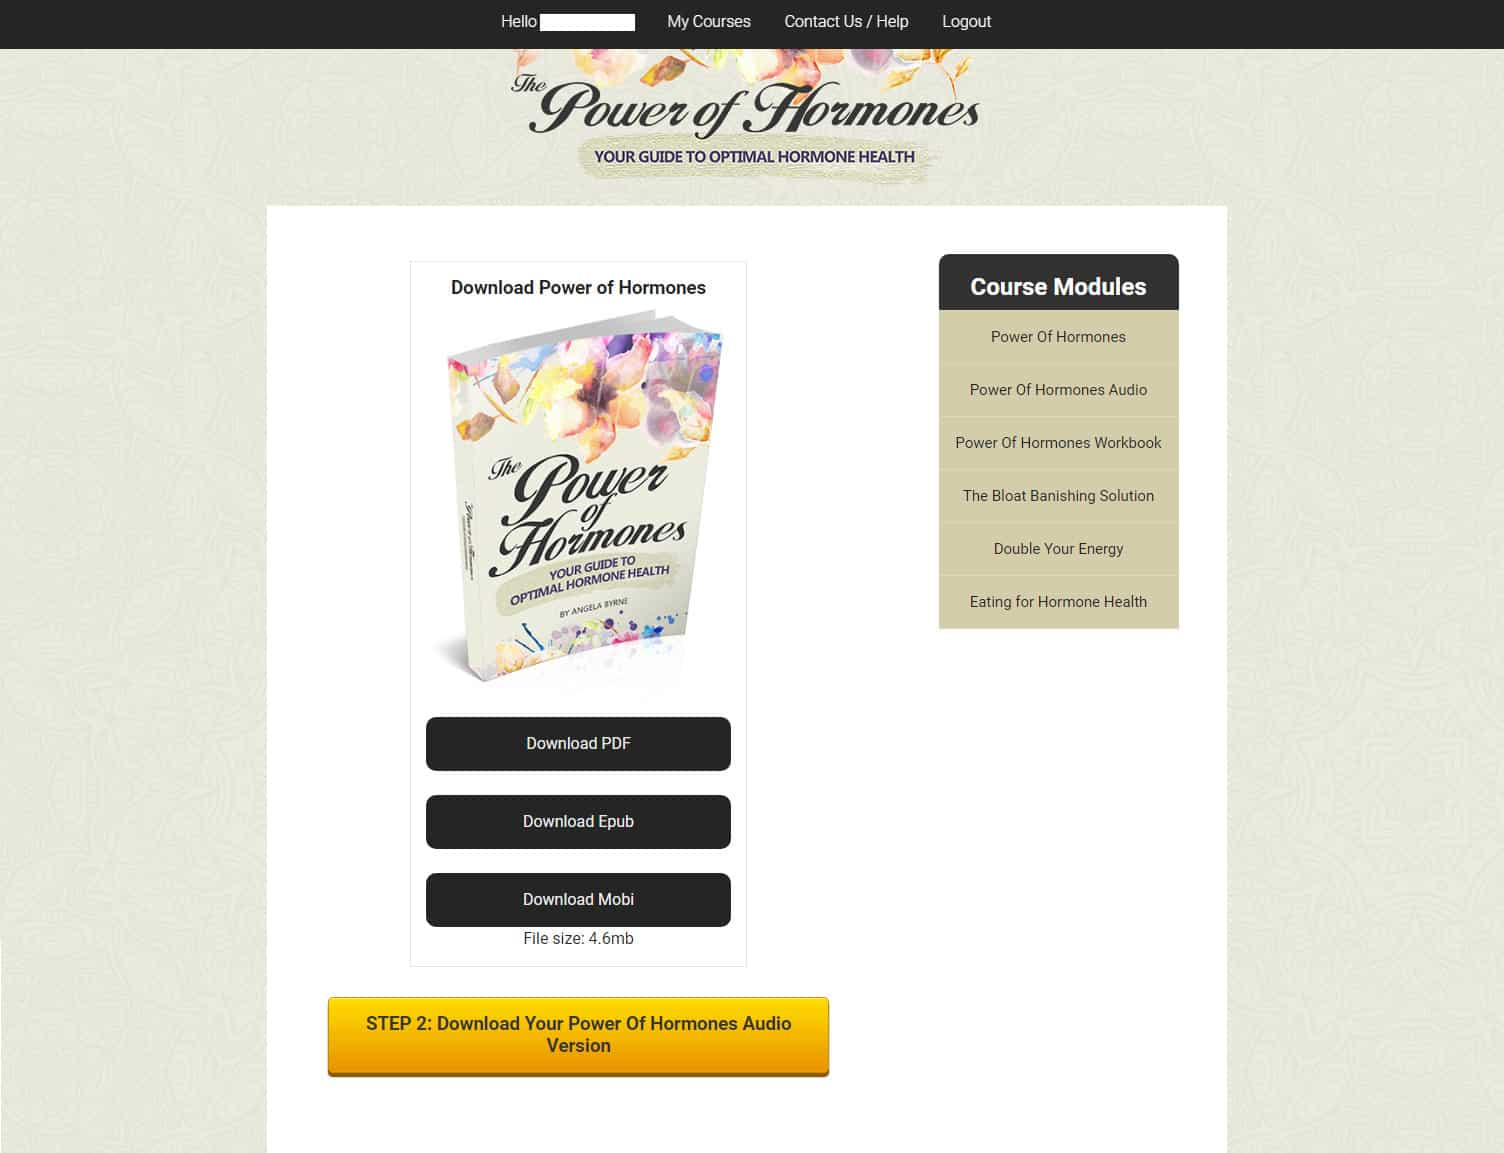 The Power of Hormones Download Page